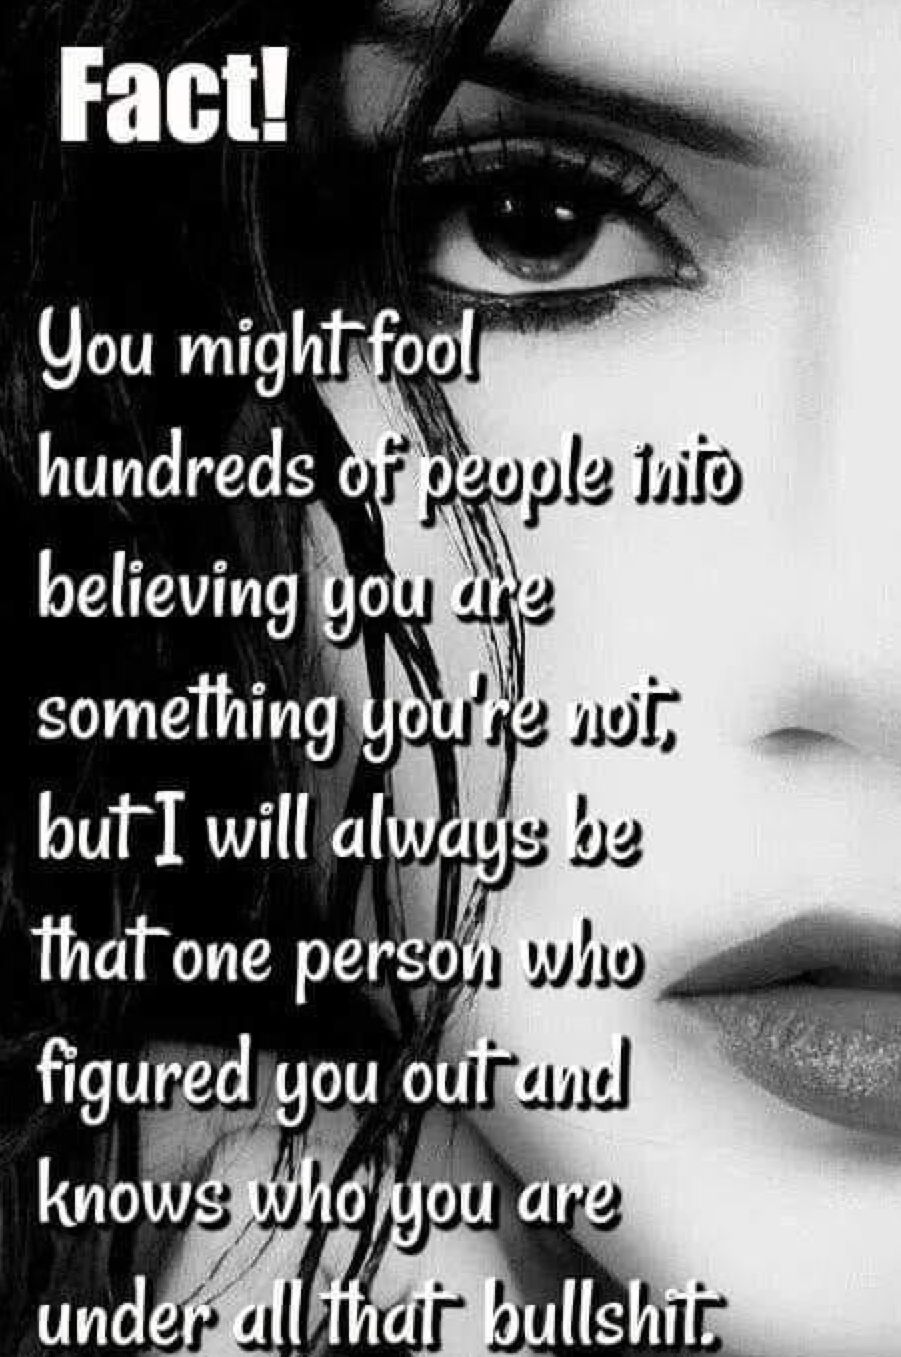 Quotes About Haters And Fake People Quotesgram Quotes About Haters Hypocrite Quotes Fake People Quotes